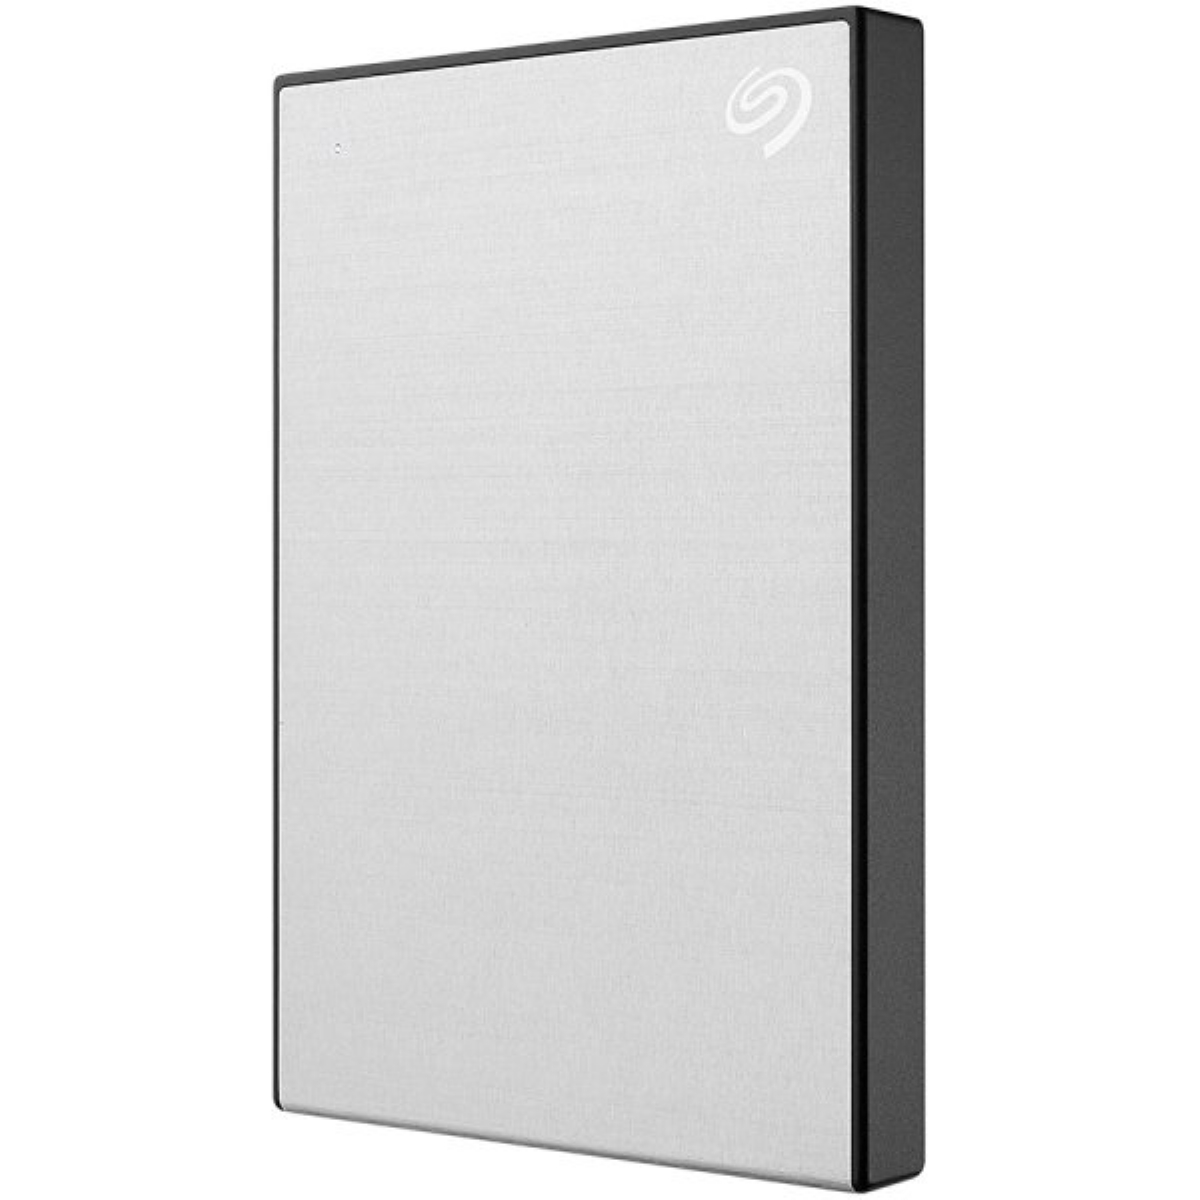 """Външен хард диск Seagate External ONE TOUCH HDD 2TB 2.5"""" USB 3.0 Silver"""